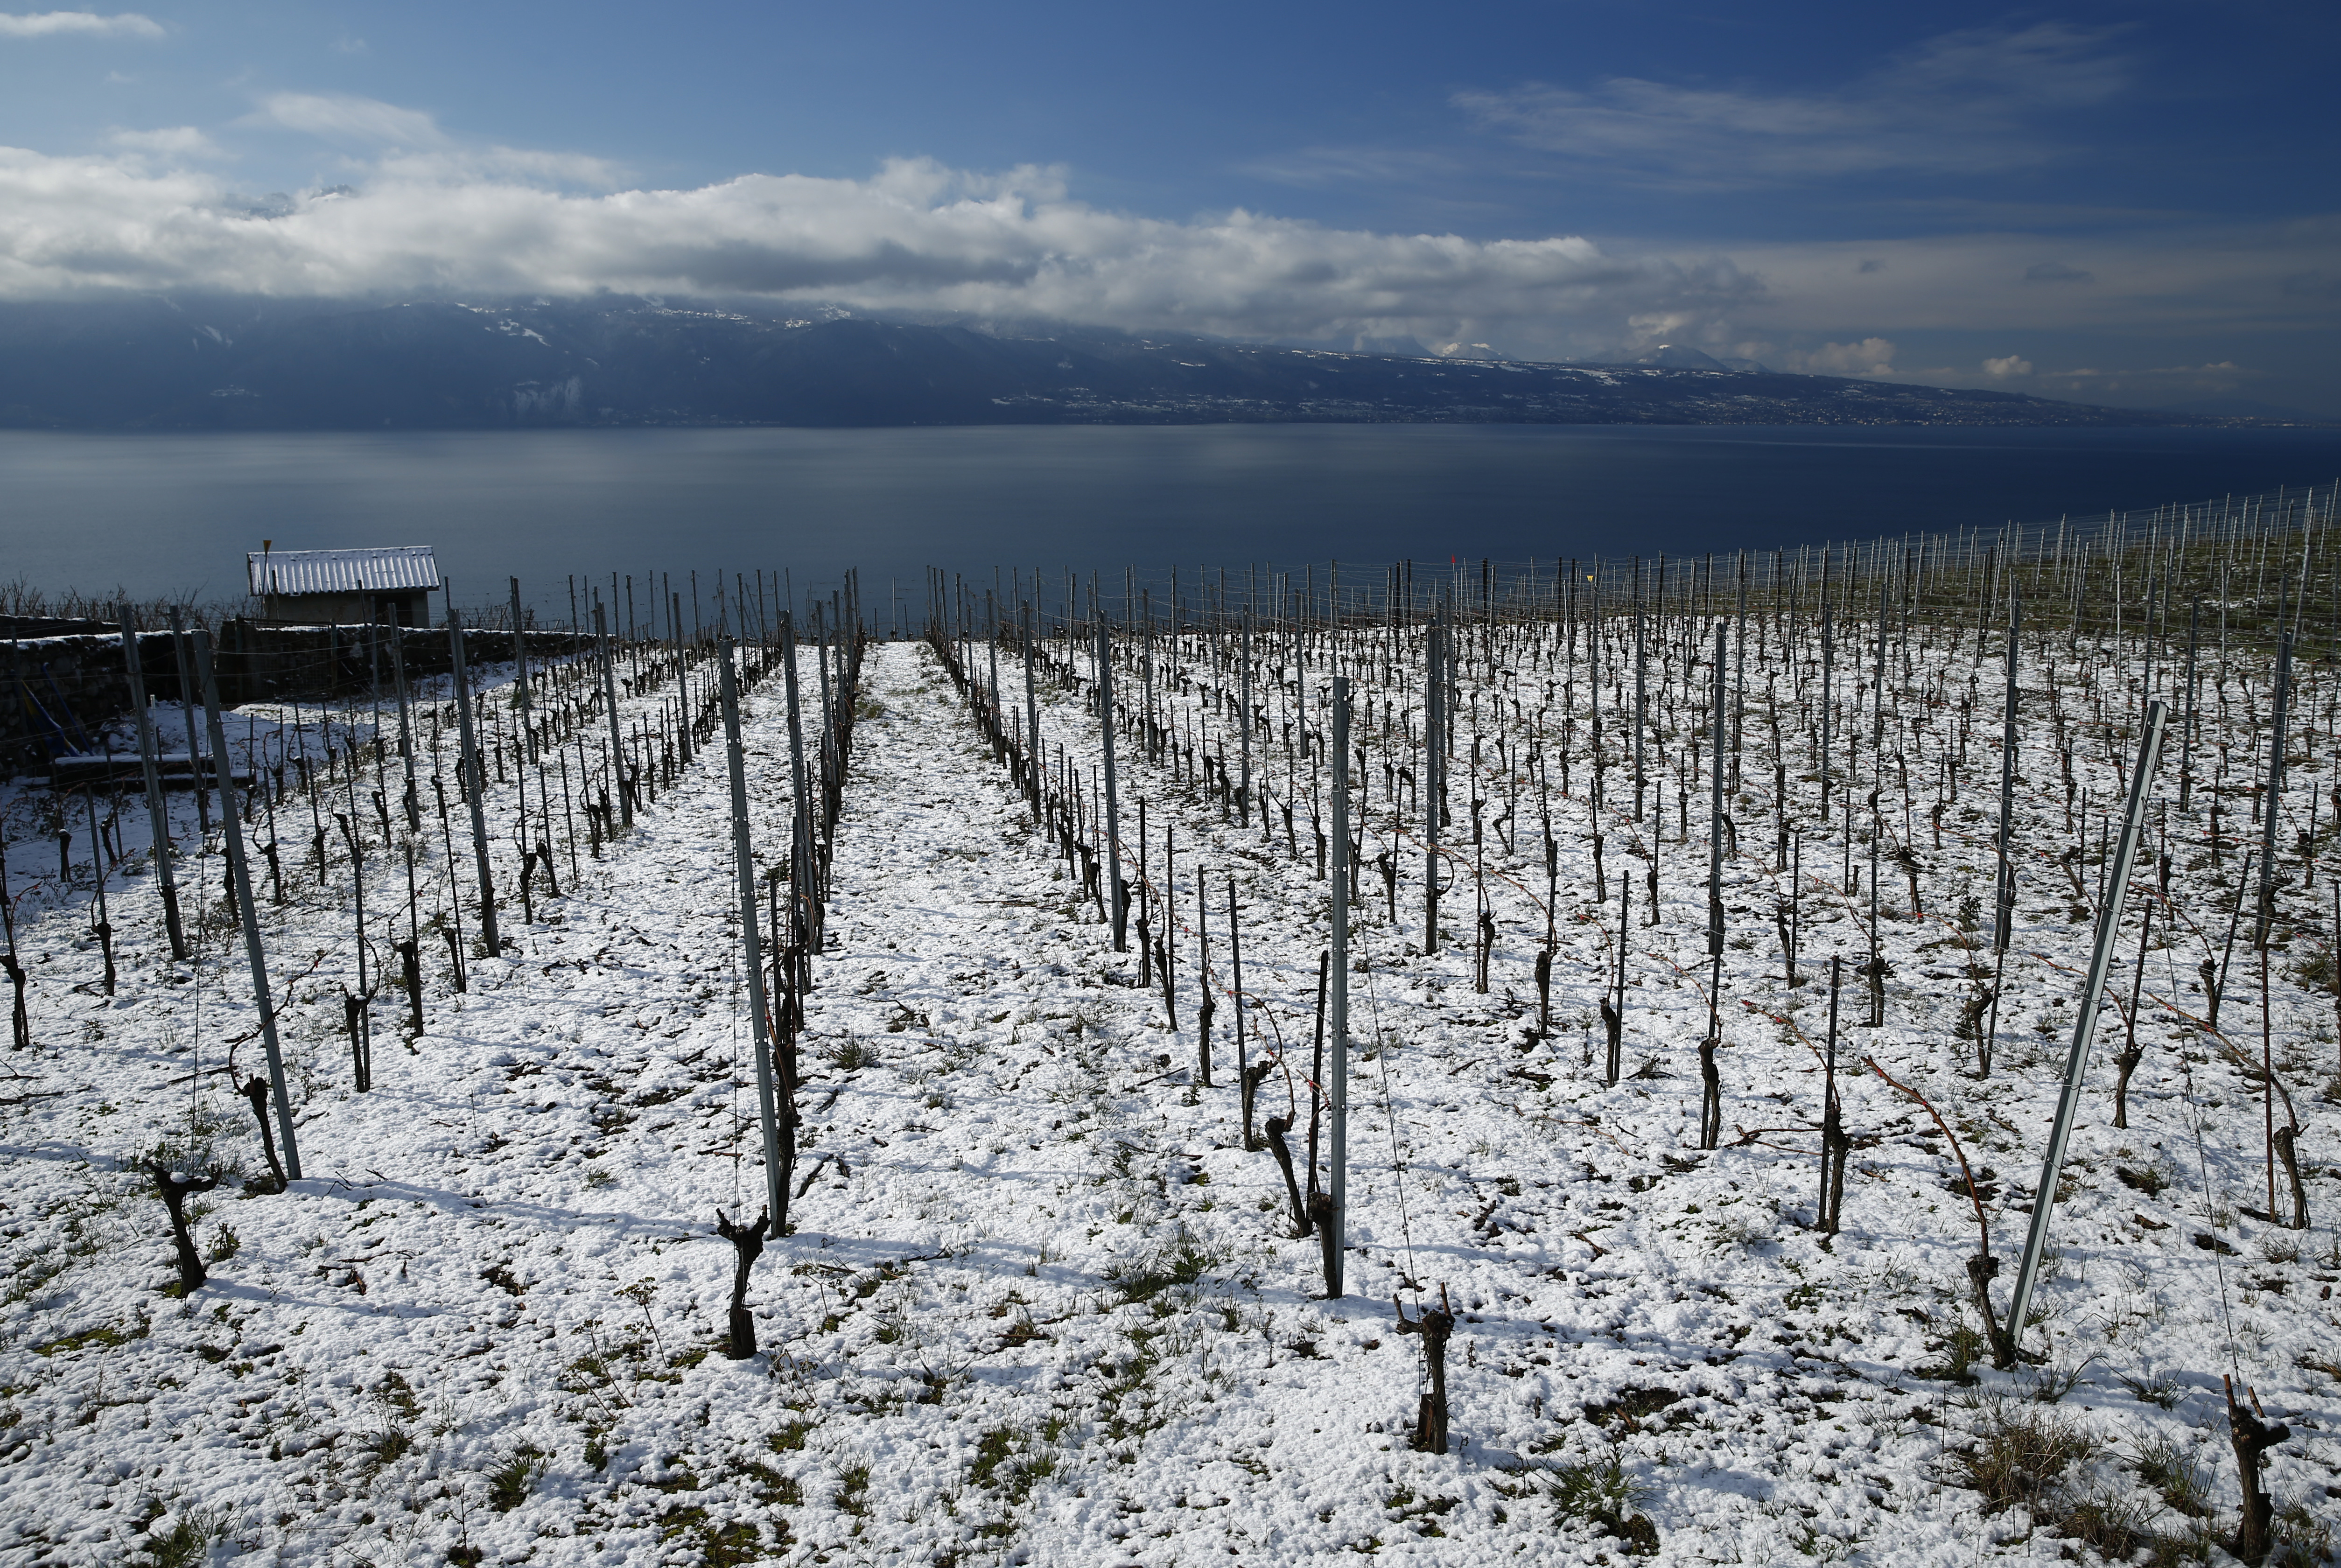 The vineyards of Lavaux are pictured overlooking Lake Leman after an overnight snowfall in Riex near Vevey